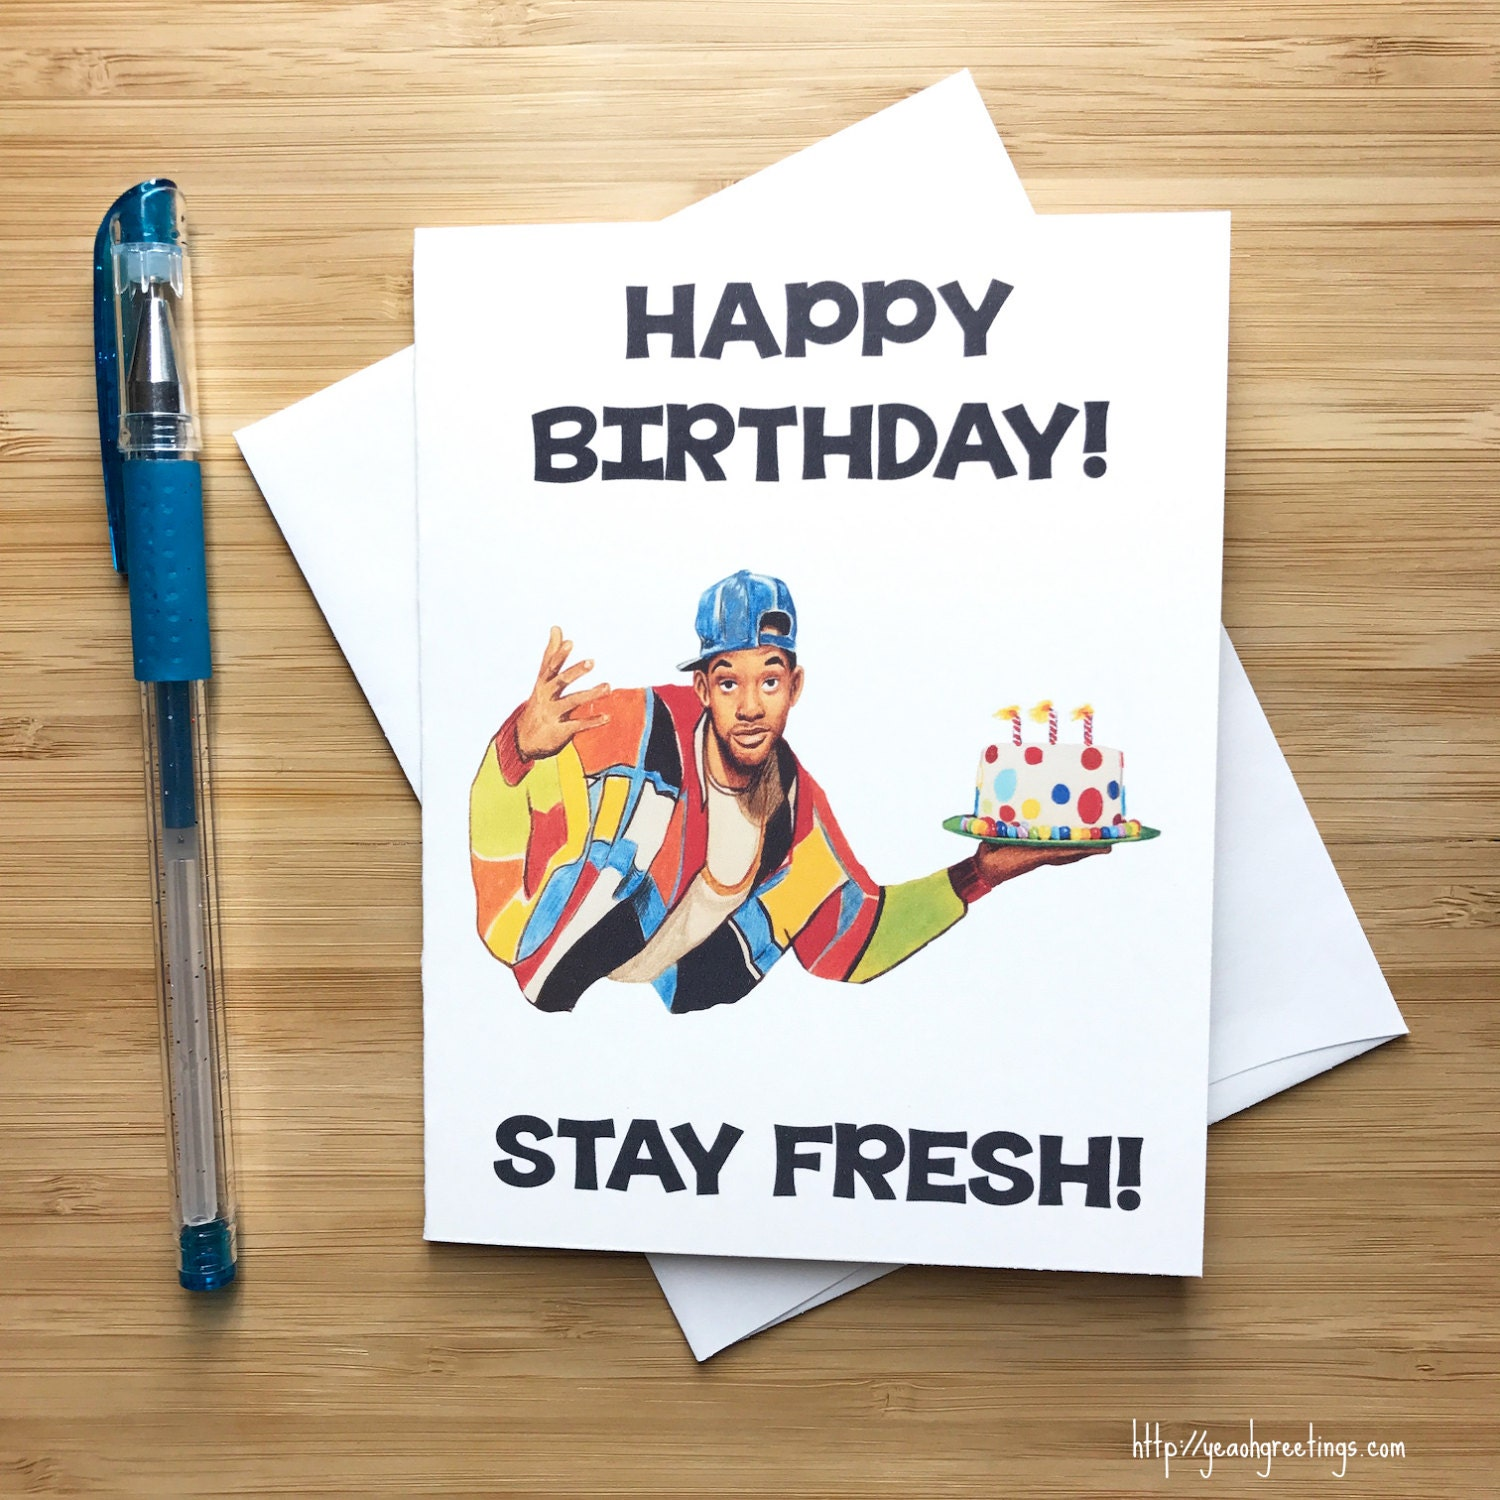 Funny Birthday Card Fresh Prince Of Bel Air Will Smith